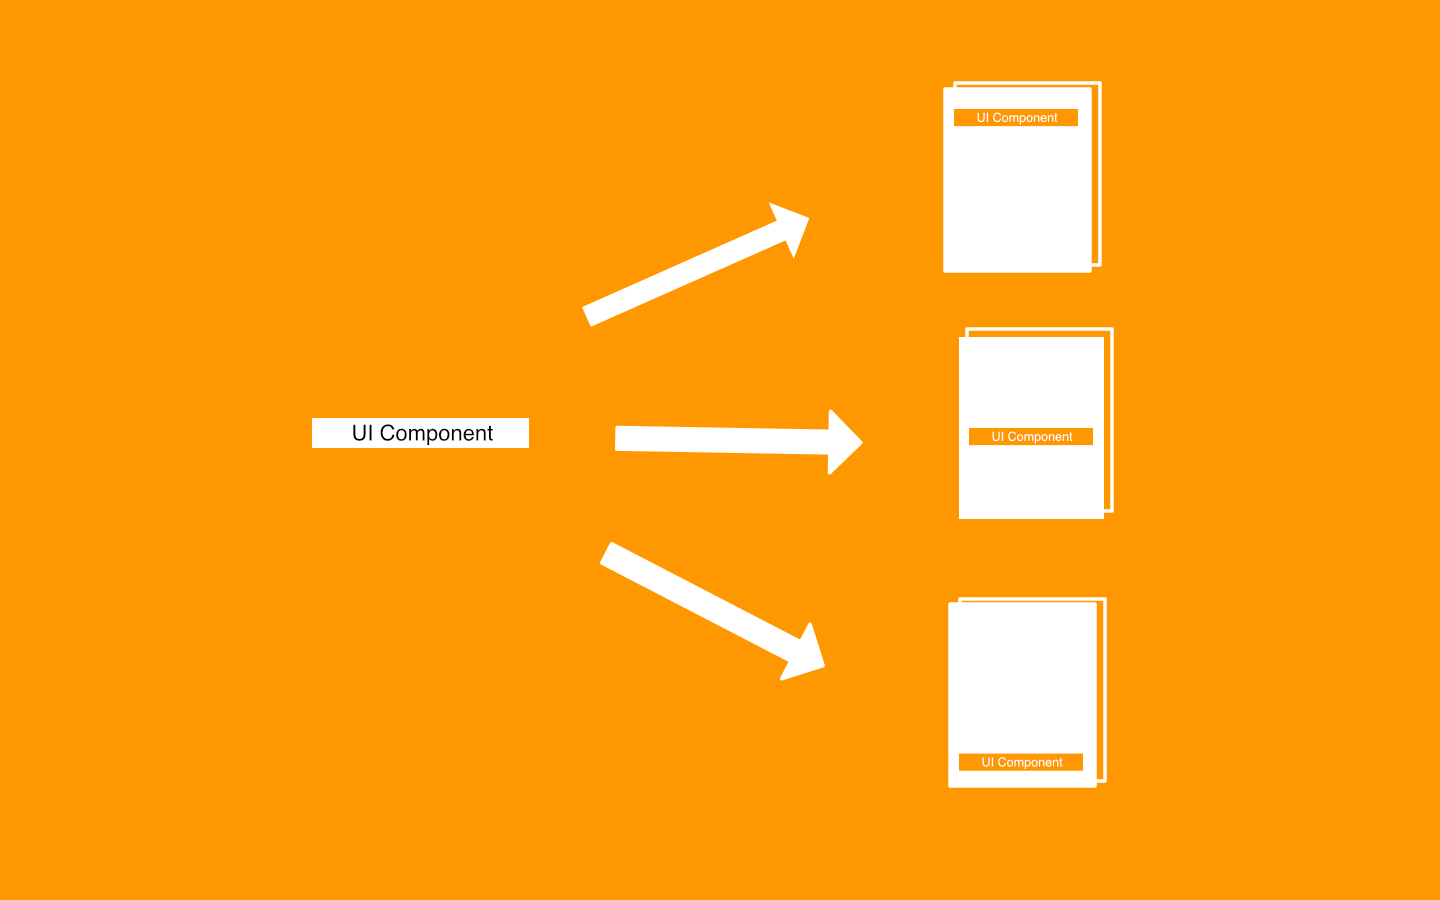 Creating repeatable UI components makes high fidelity prototyping more efficient.